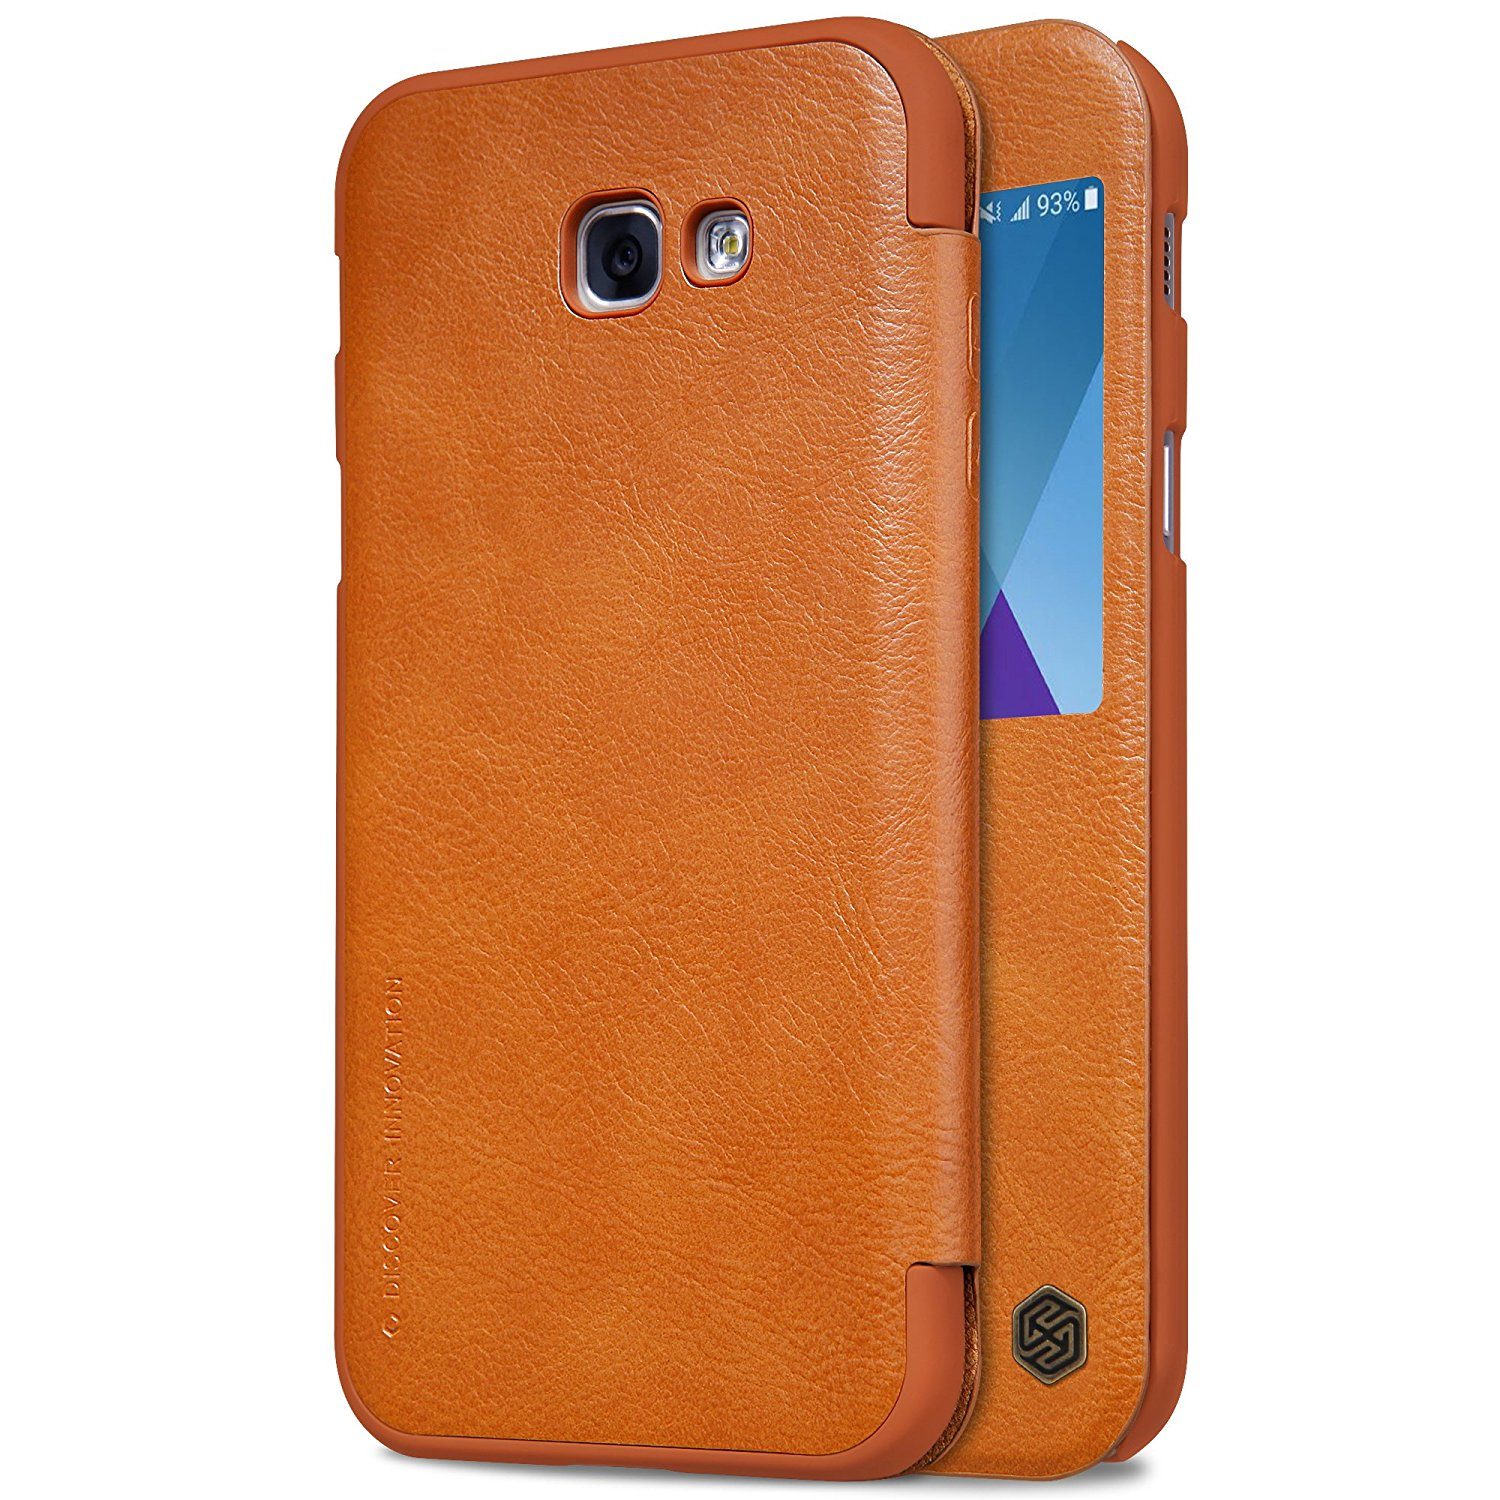 Nillkin Qin View Leather Case for Samsung Galaxy A5 2017 Casing Cover - Cokelat